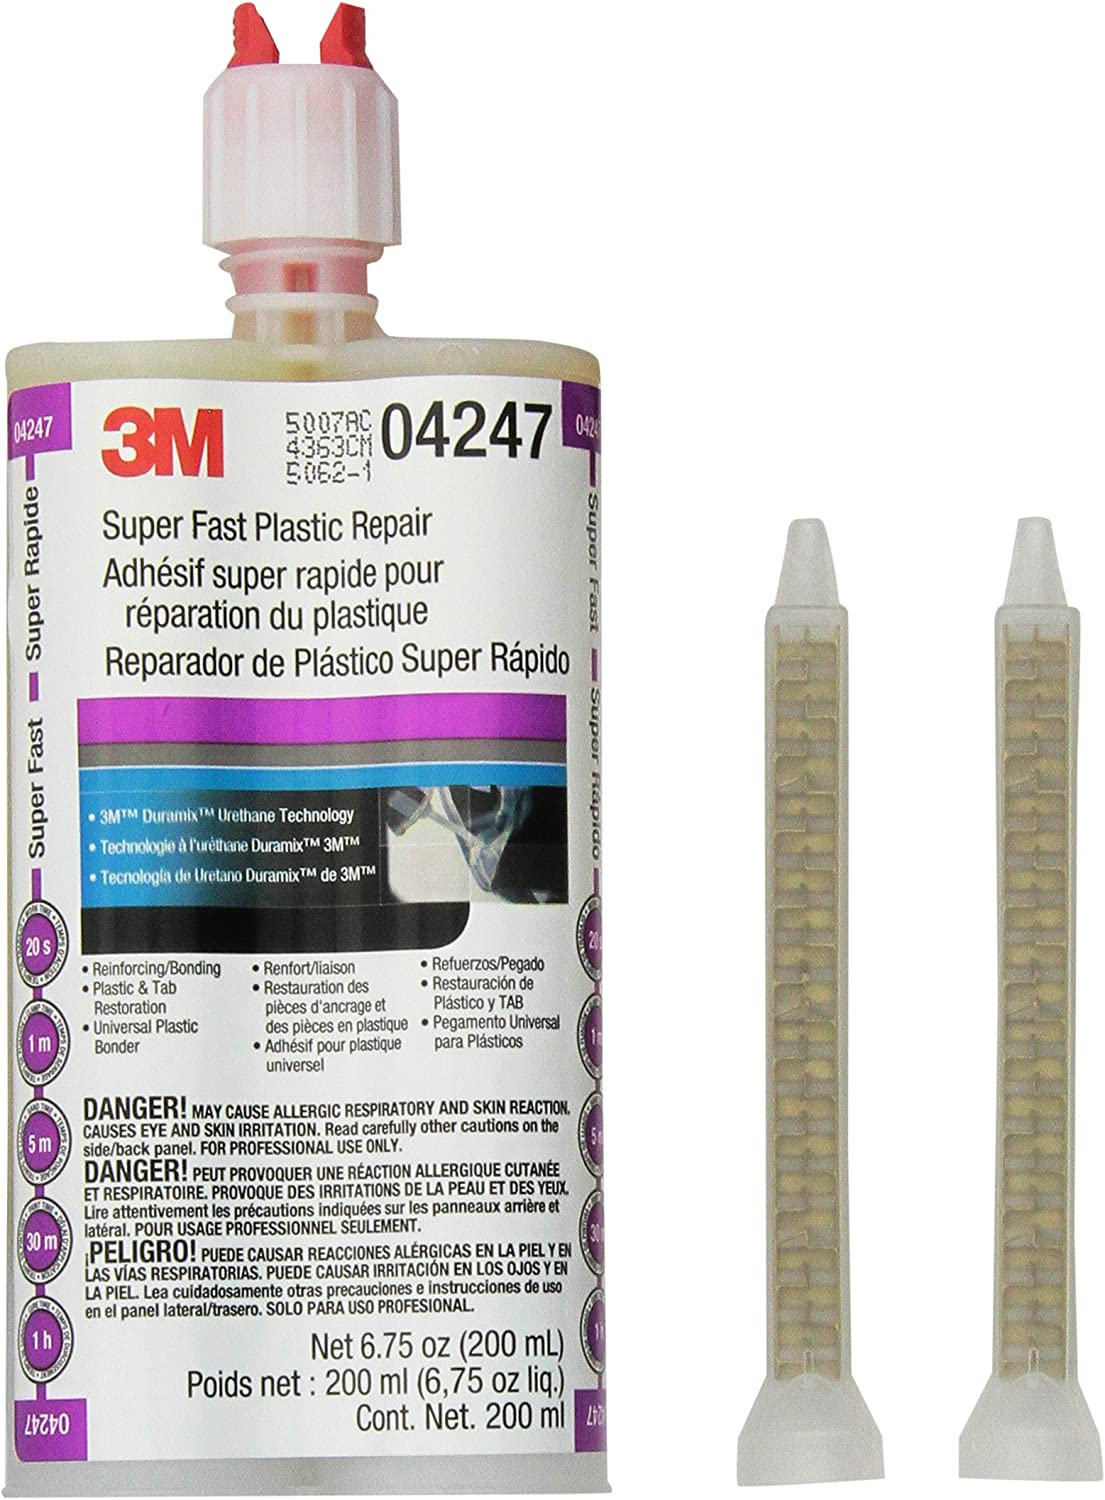 3M Super Fast Plastic Repair, 04247, Clear, 200 mL Cartridge